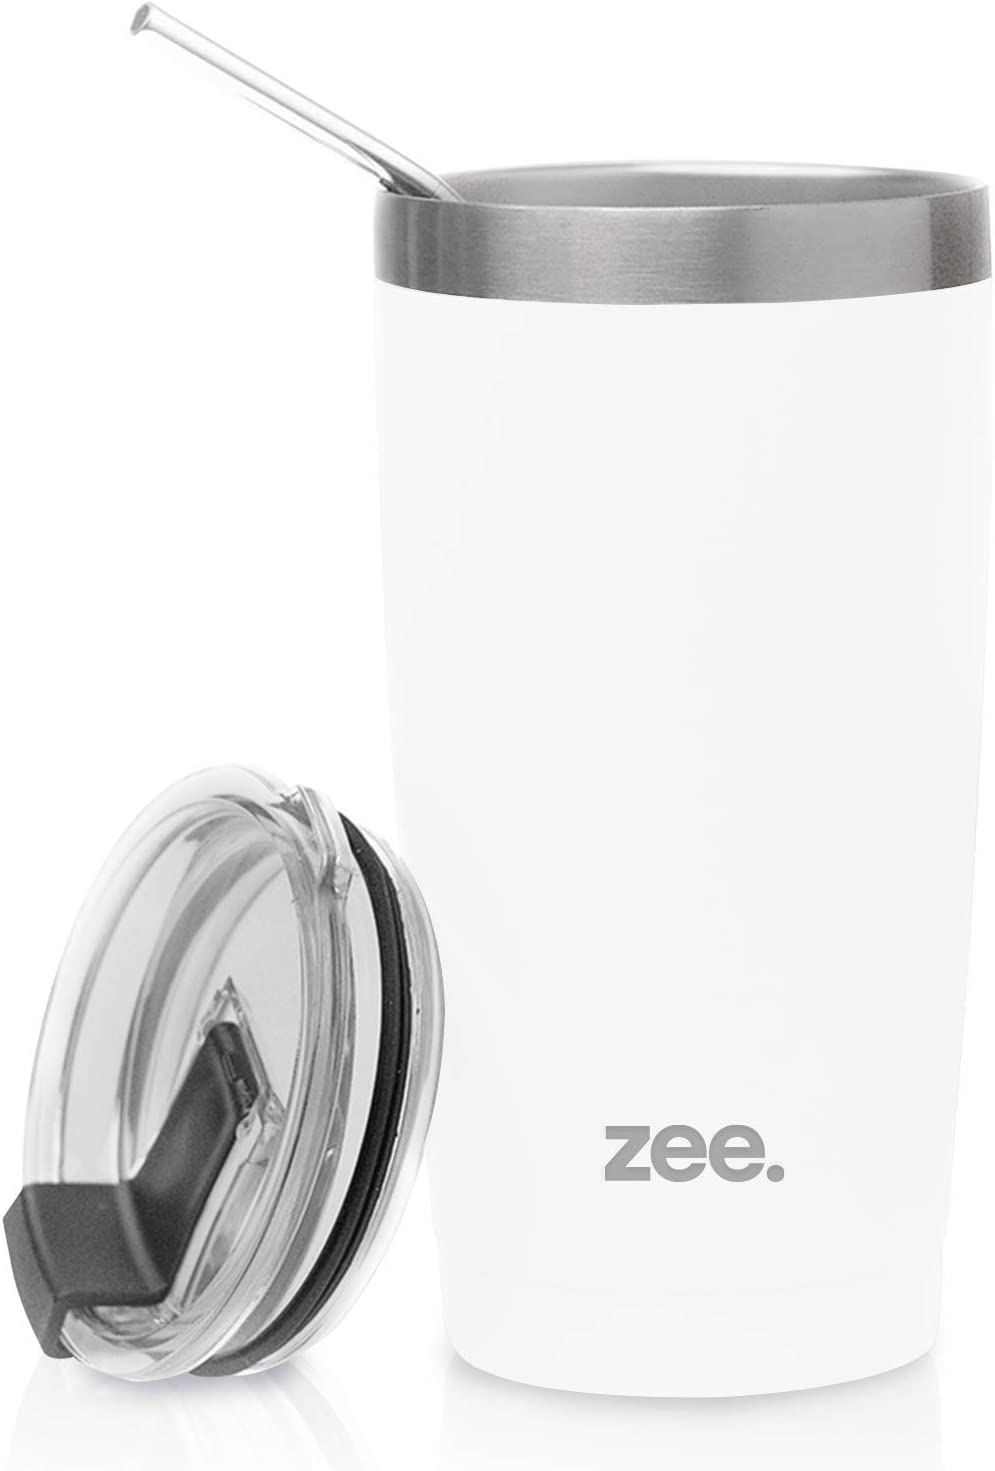 Tumbler with Straw & Cleaning Brush - Vacum Insulated Stainless Steel Tumbler Cup For Hot & Cold Beverages - Non-Slip, Anti-Splash, Sweat-Proof, Portable Travel Mugs by Zee (White, 20 oz)